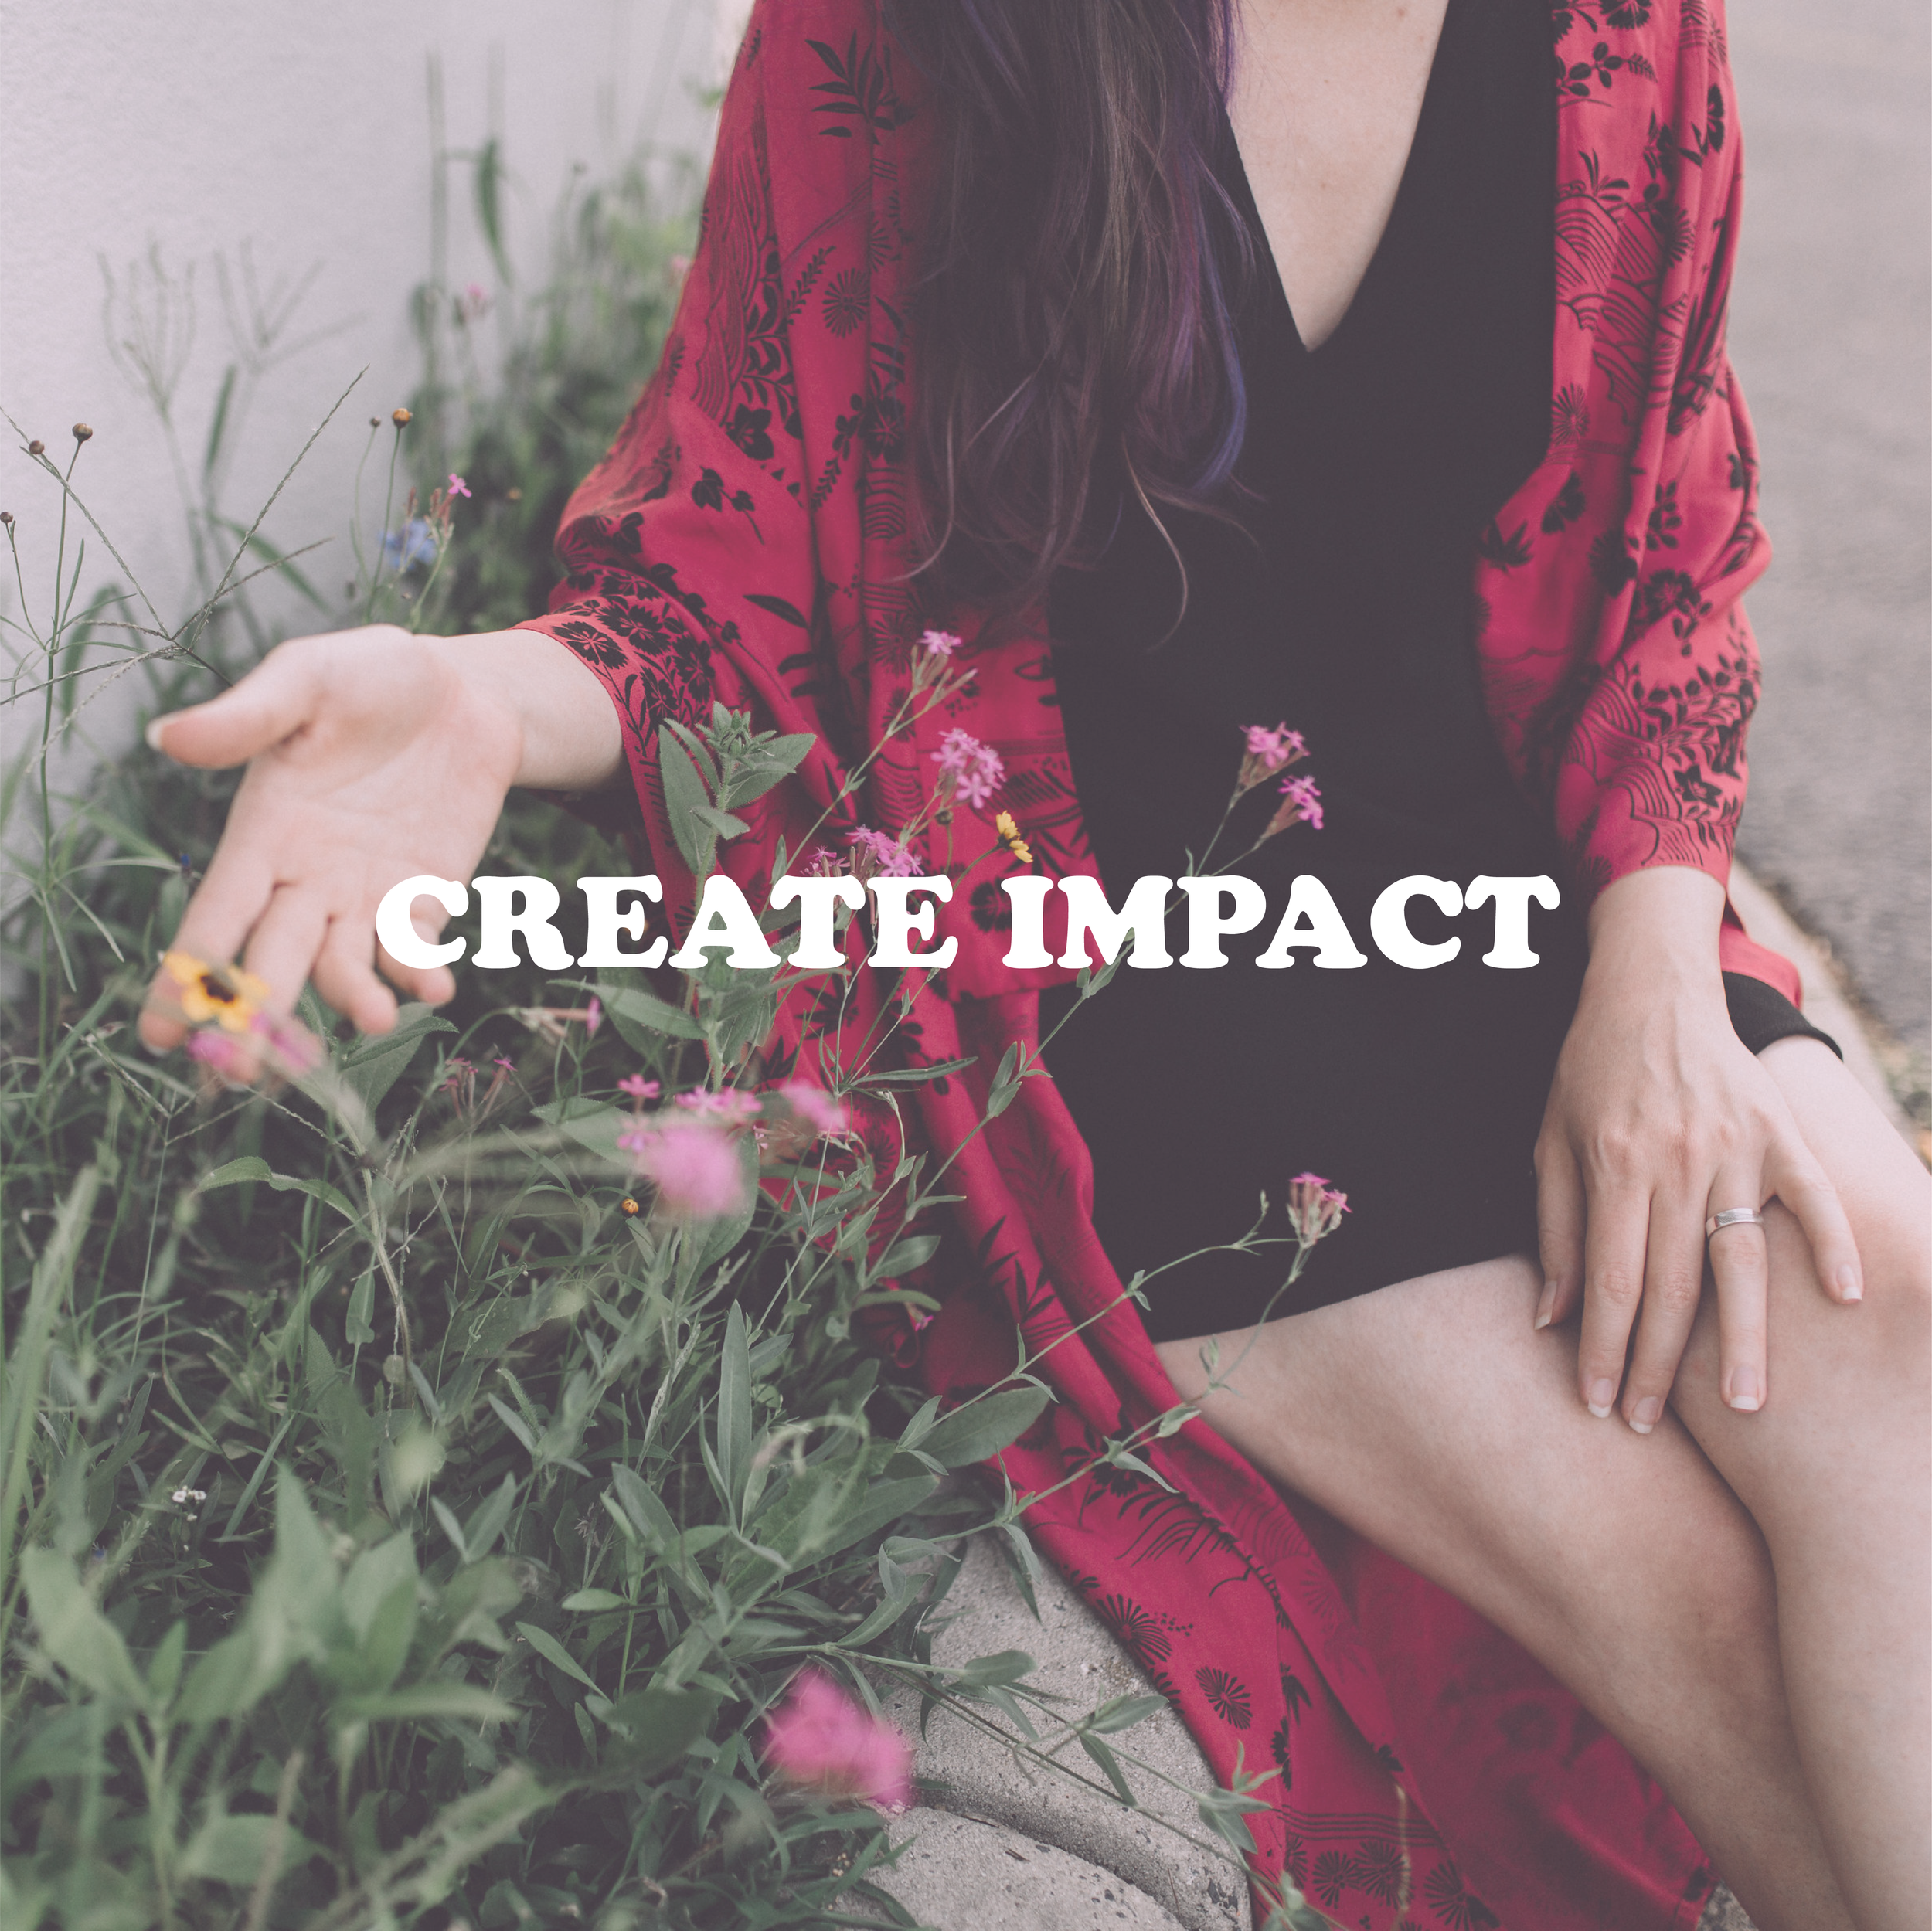 Create Impact | Learn to Live Low-Waste | Book an In-Home Session or Take a Class with Genevieve Nalls, The Classy Hippie